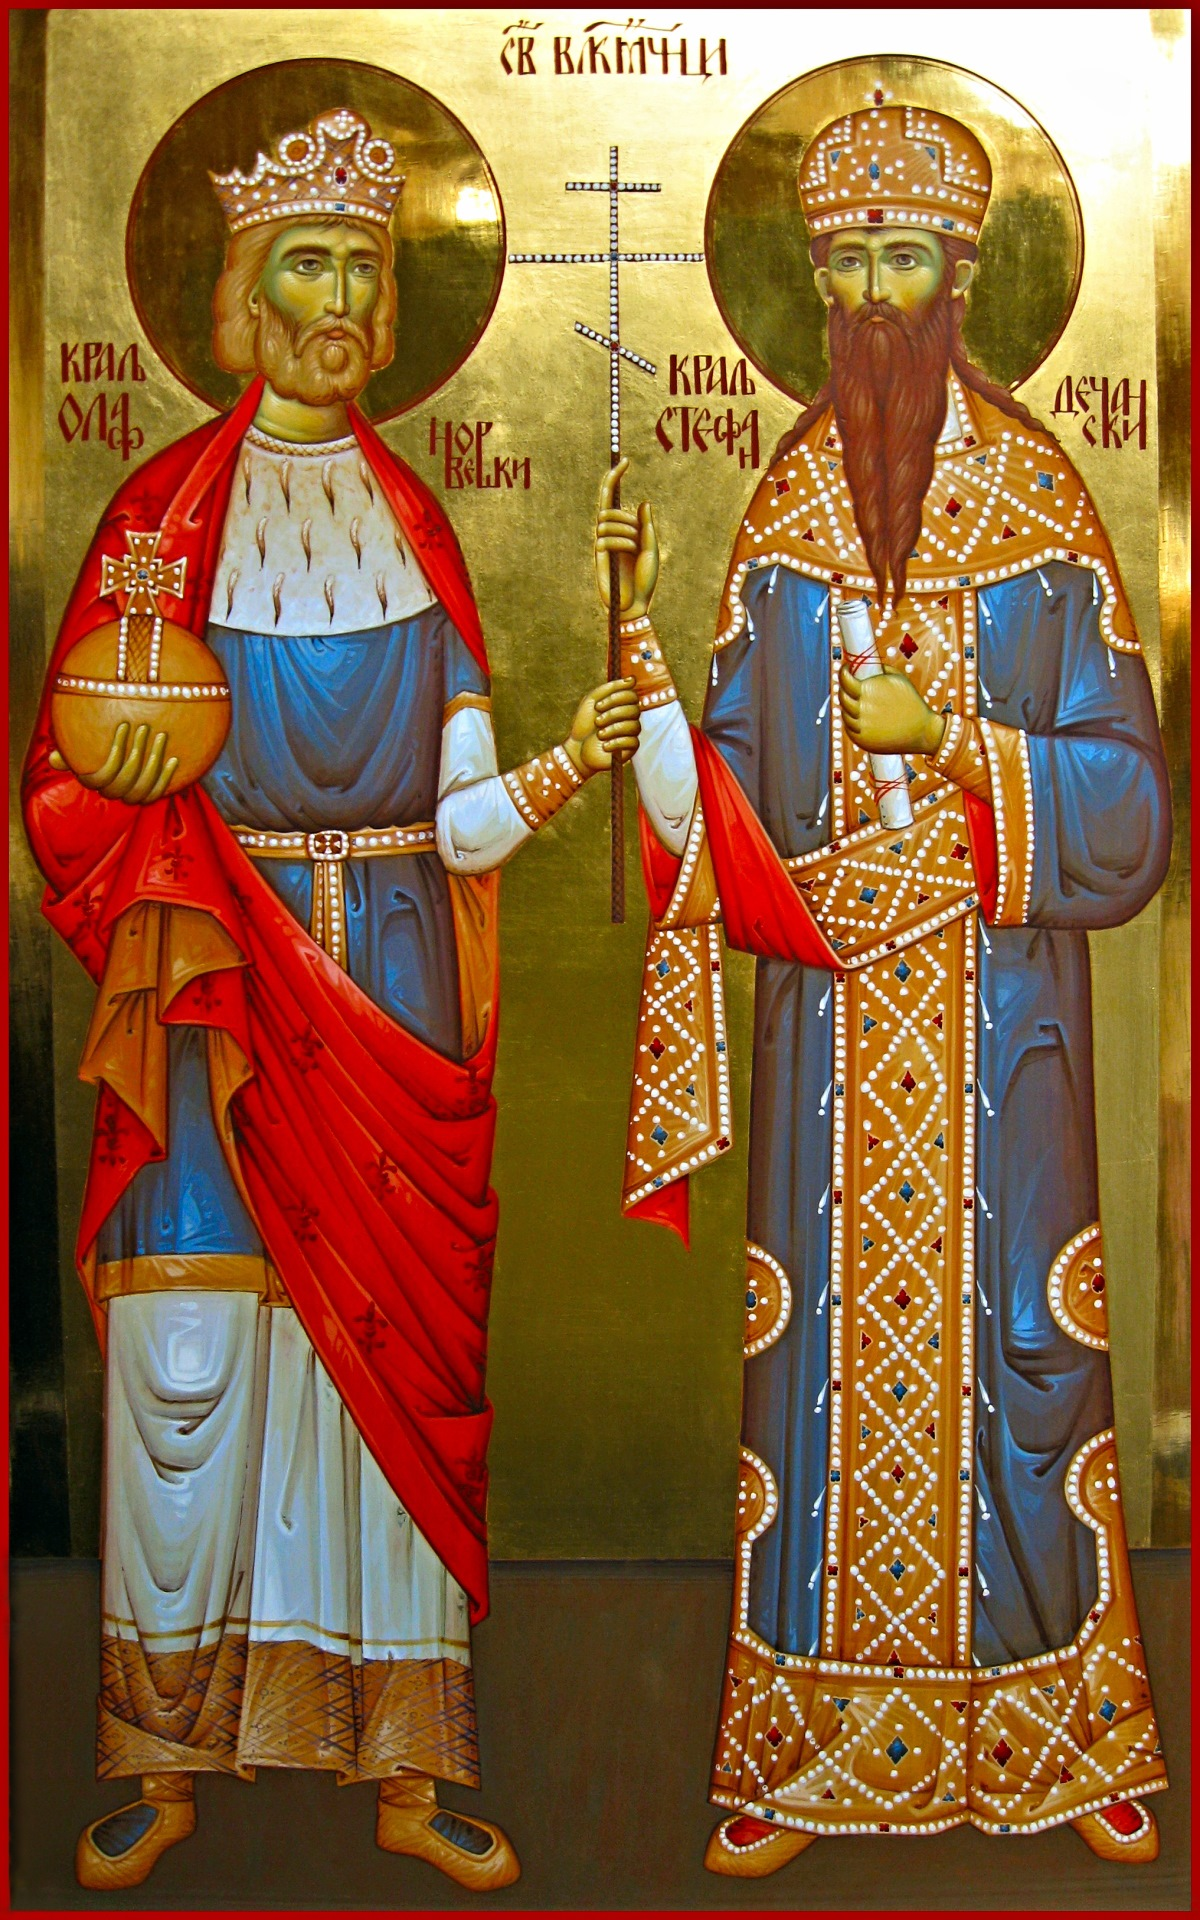 00 King St Olav II of Norway and Stefan Uros III of Decani Nemanjić 01. 19.10.14.